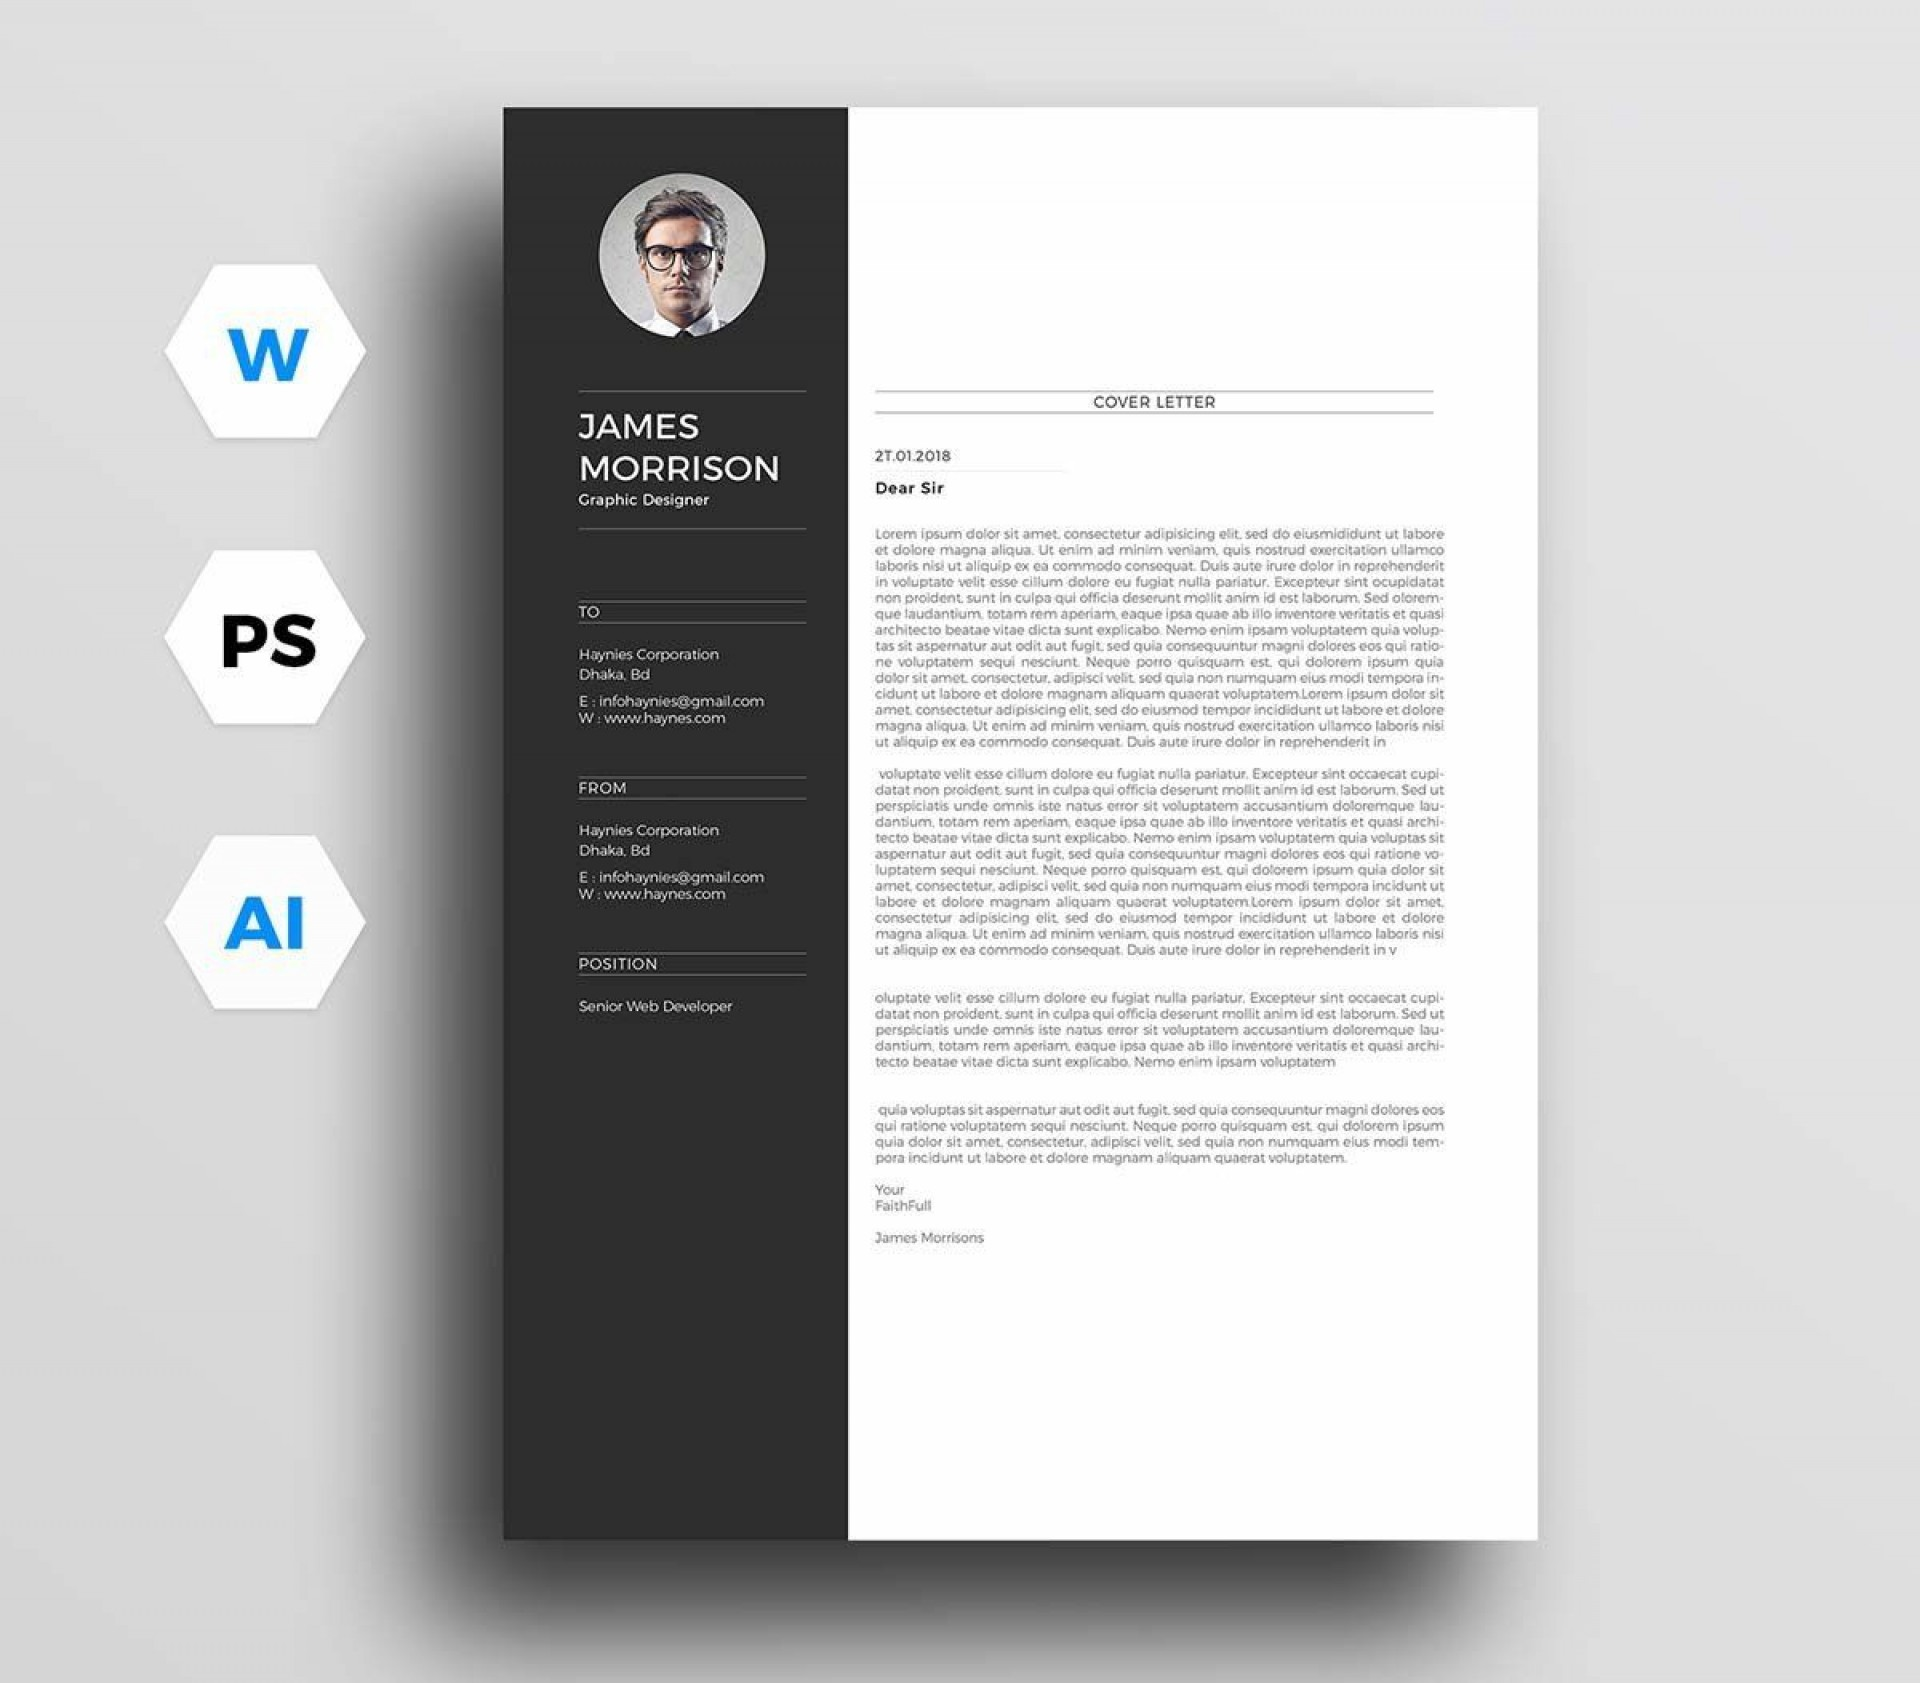 005 Formidable Microsoft Resume Cover Letter Template Free High Definition 1920